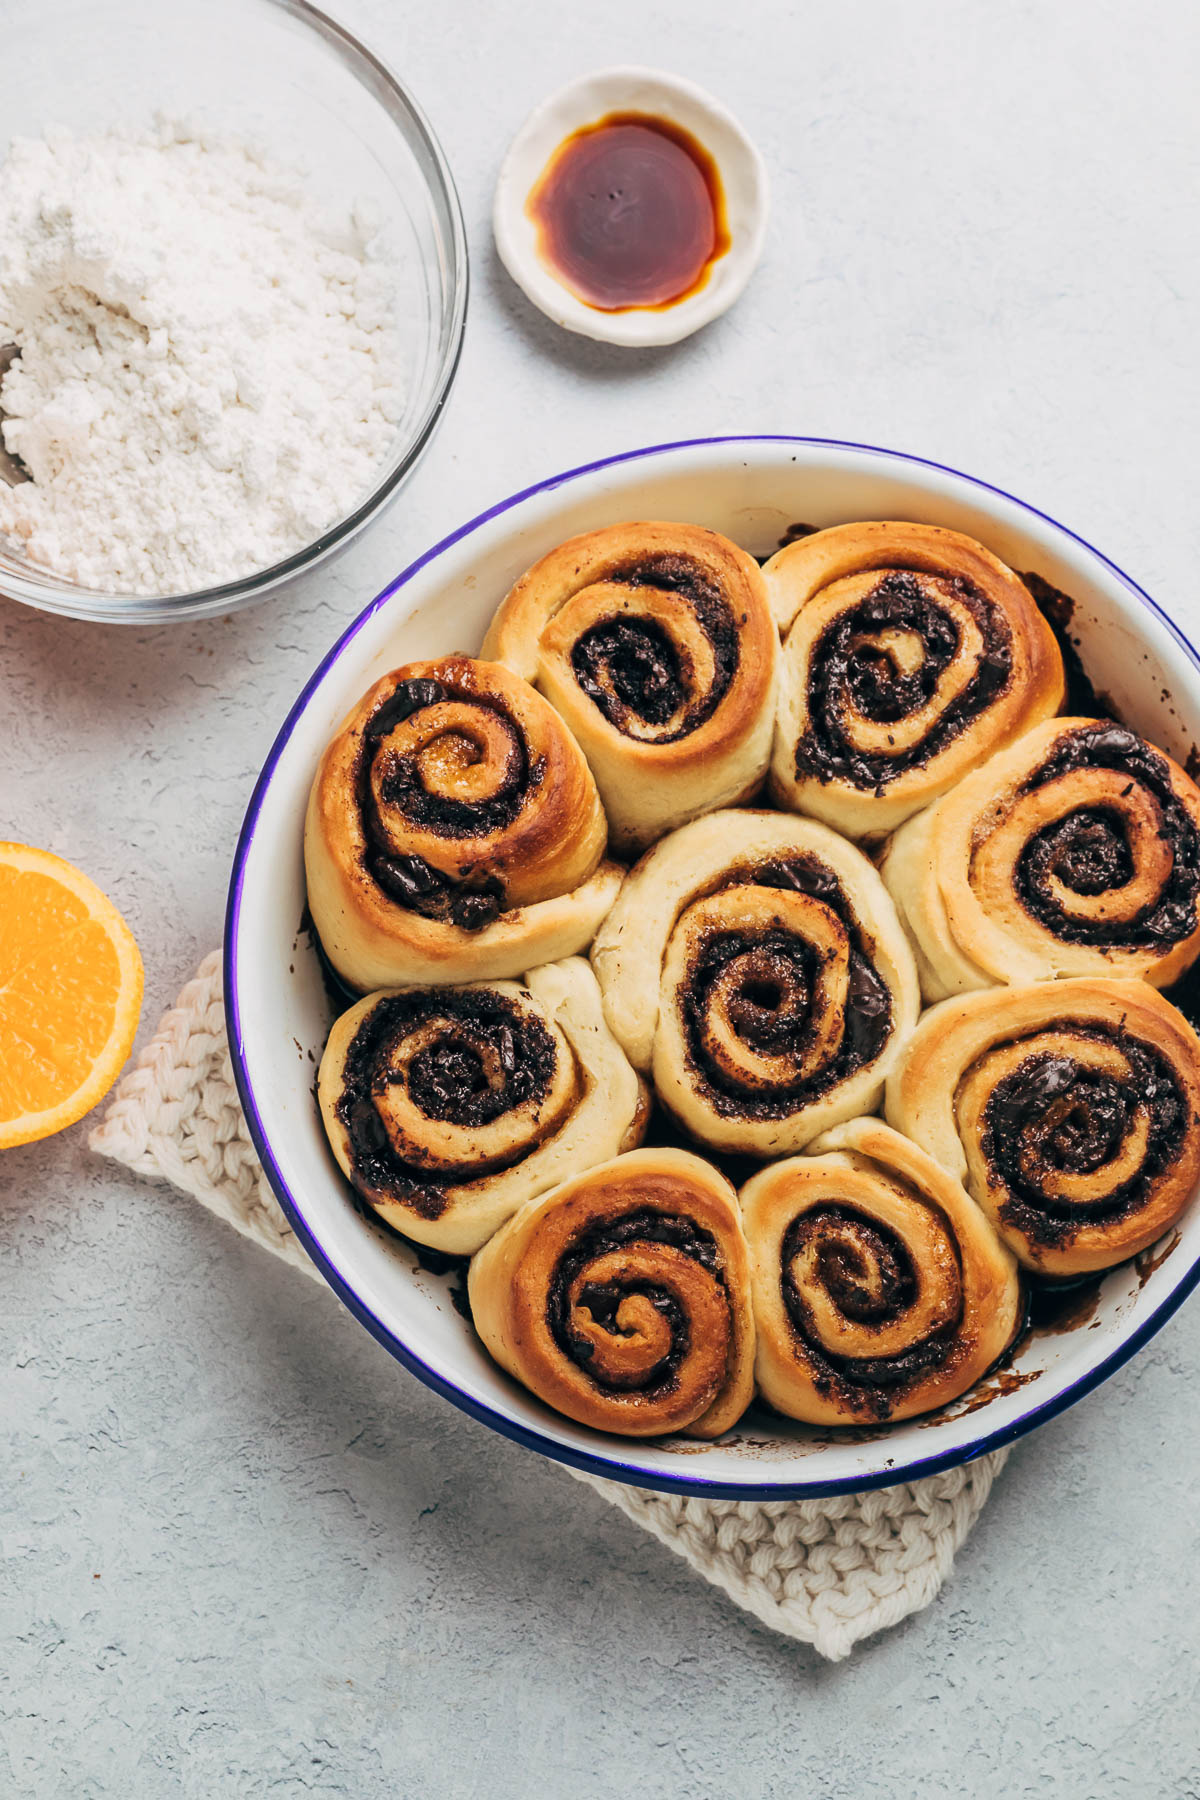 Rolls after baking.